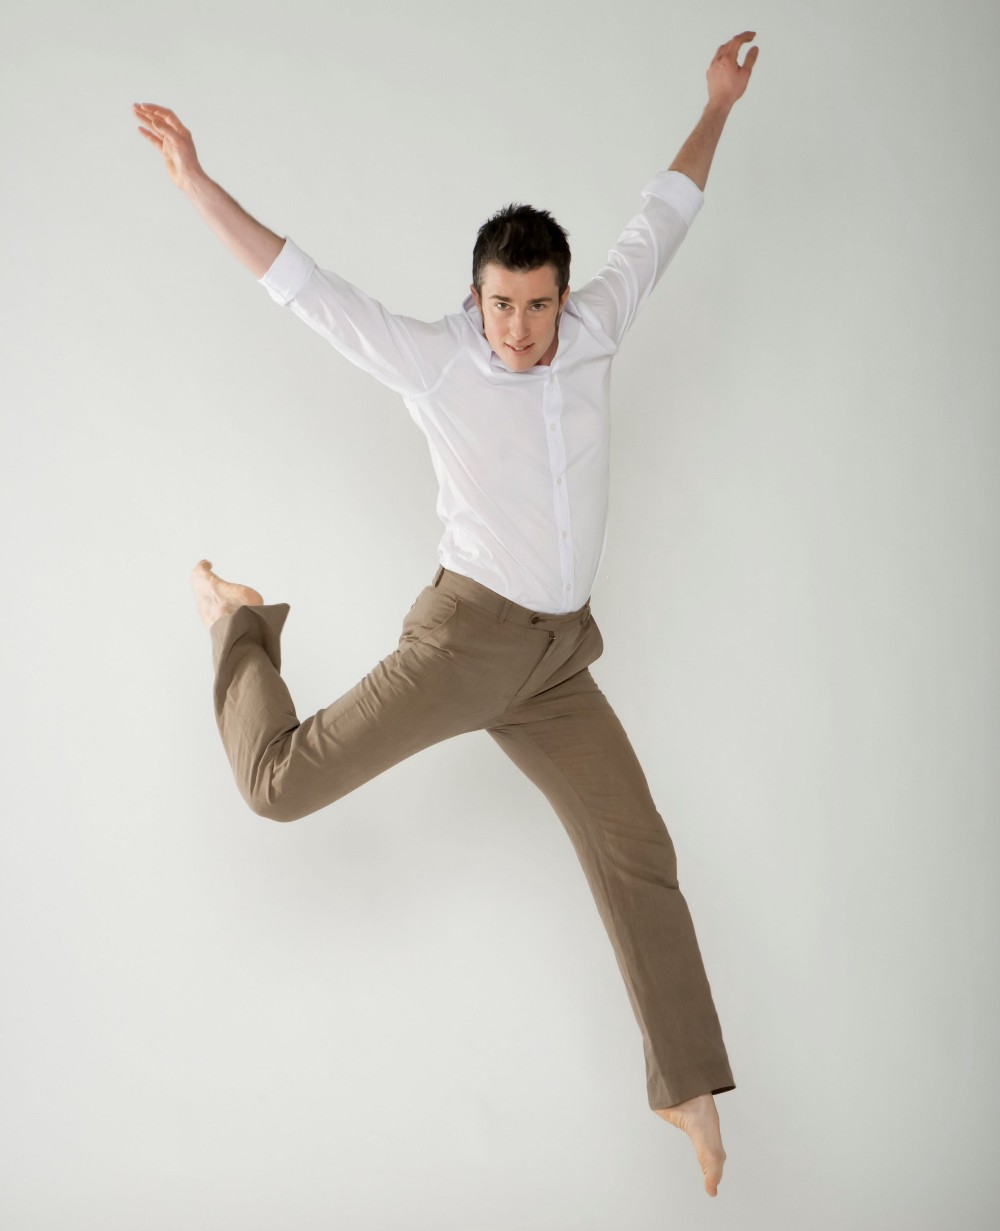 Dorsey in white shirt and tan pants, jumping in the air, back knee bent, both arms raised